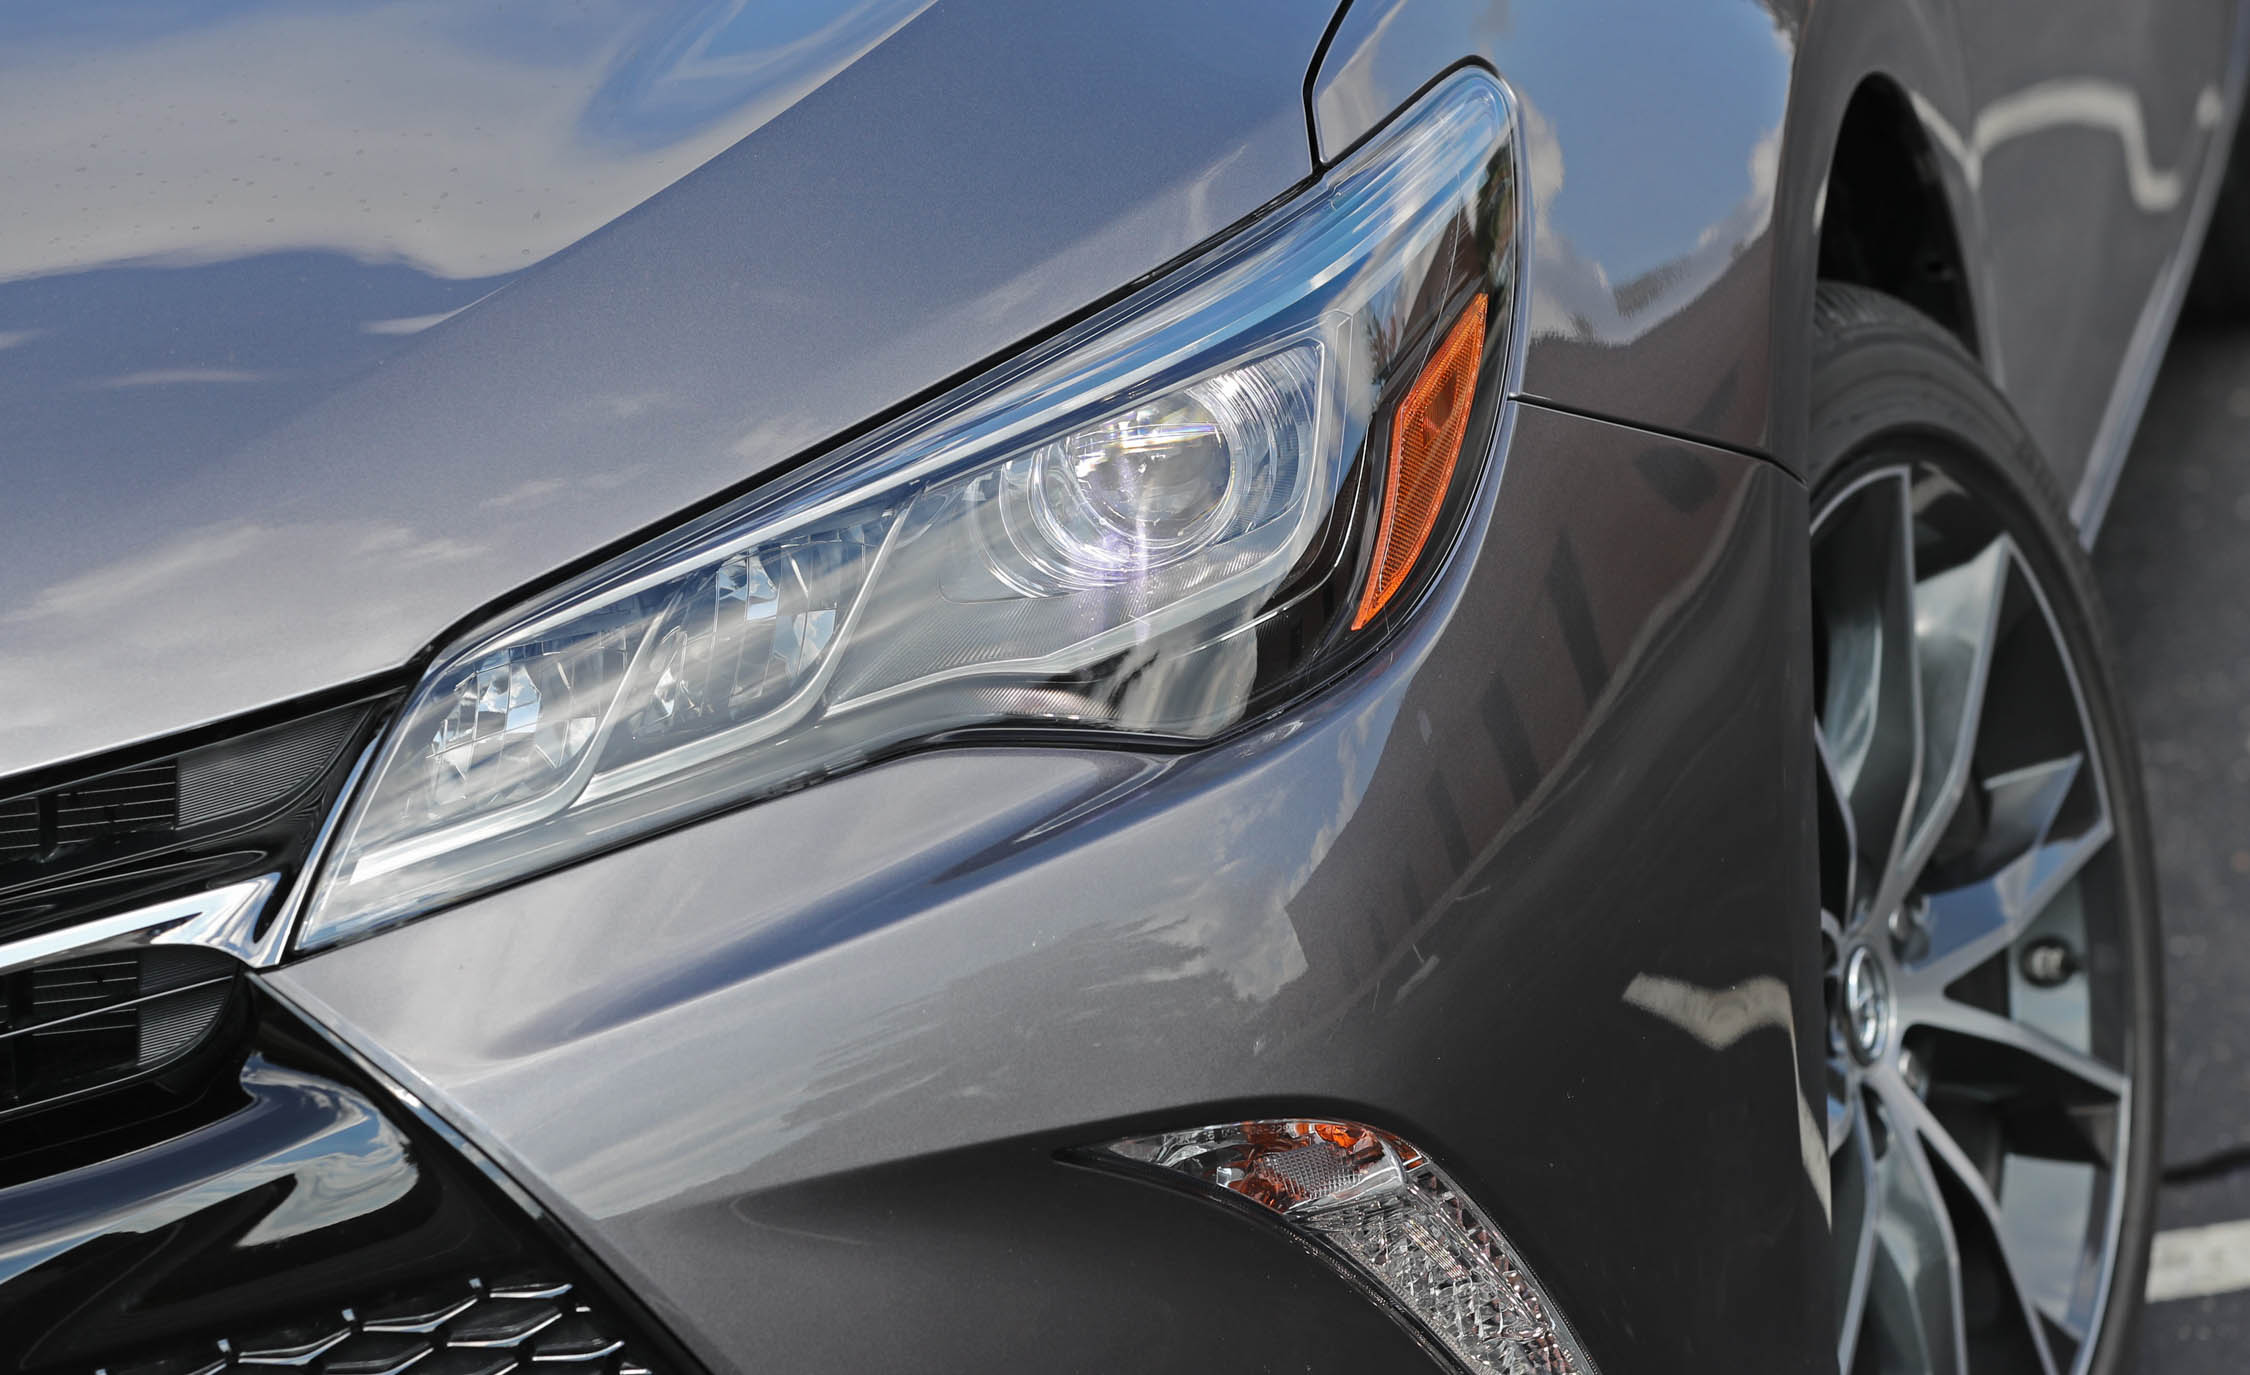 2017 Toyota Camry Exterior View Headlight (Photo 12 of 37)